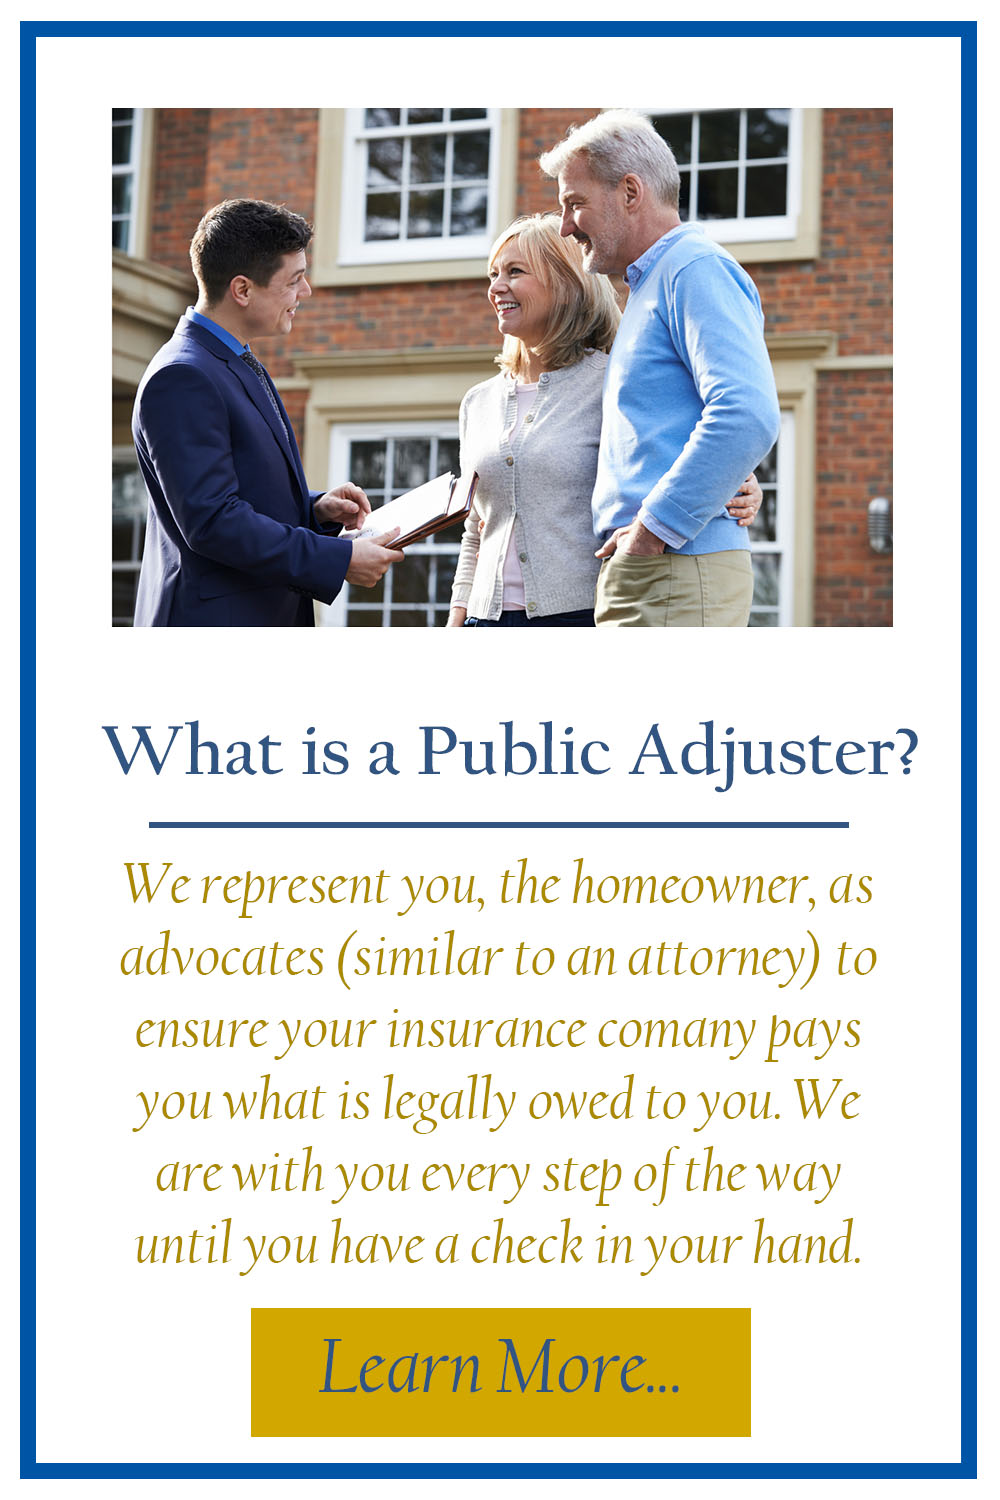 What is a Public Adjuster TILE